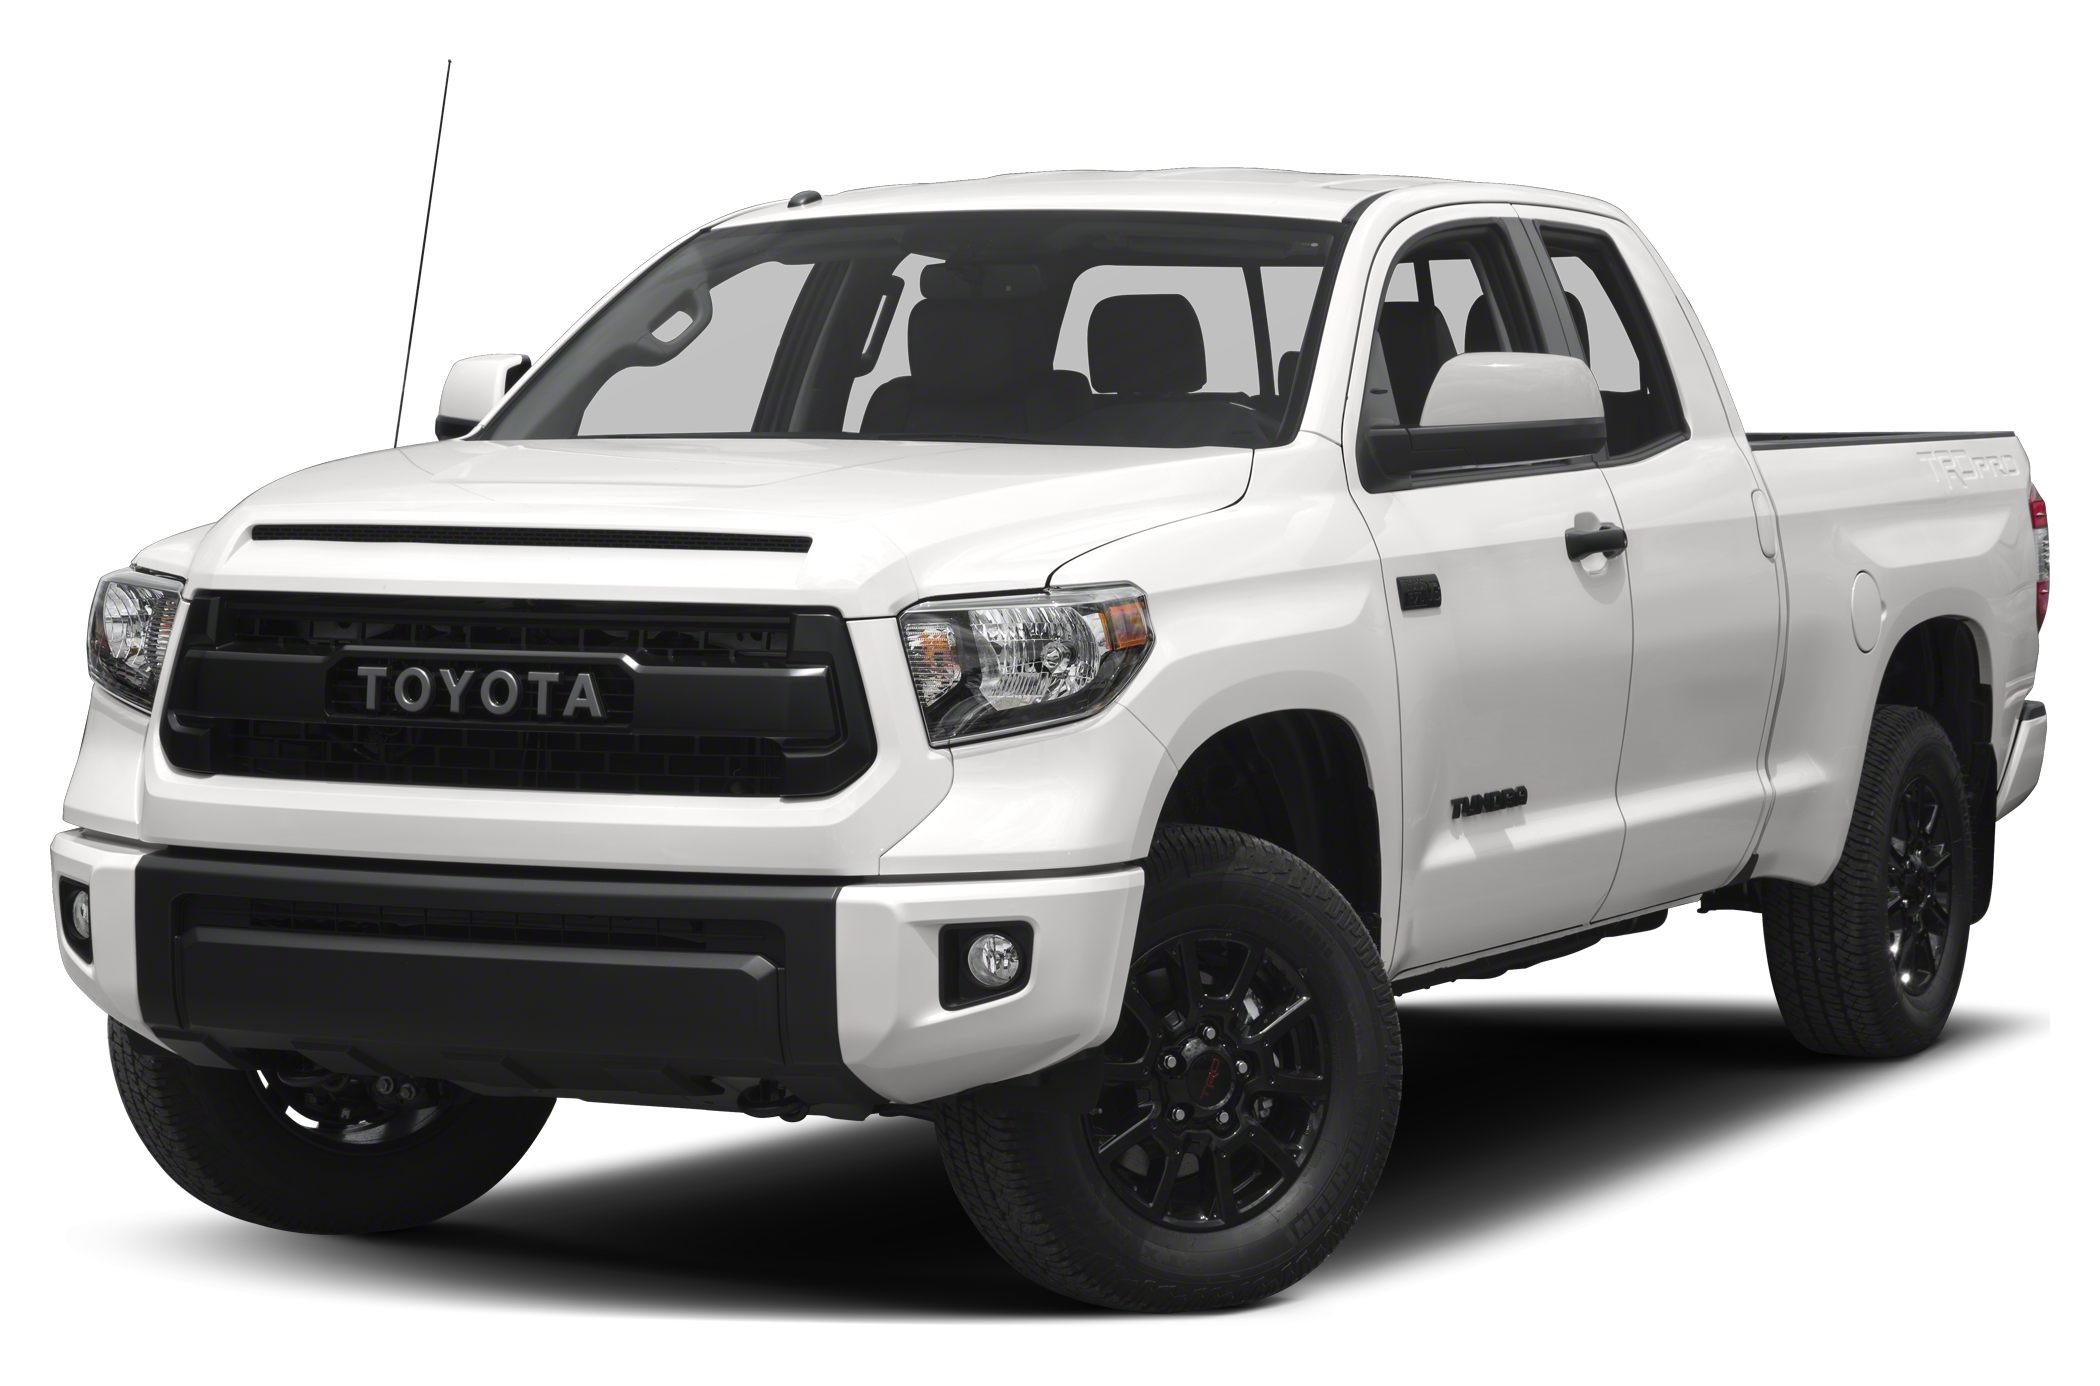 2017 Toyota Tundra TRD Pro Westboro Toyota is proud to present HASSLE FREE BUYING EXPERIENCE with